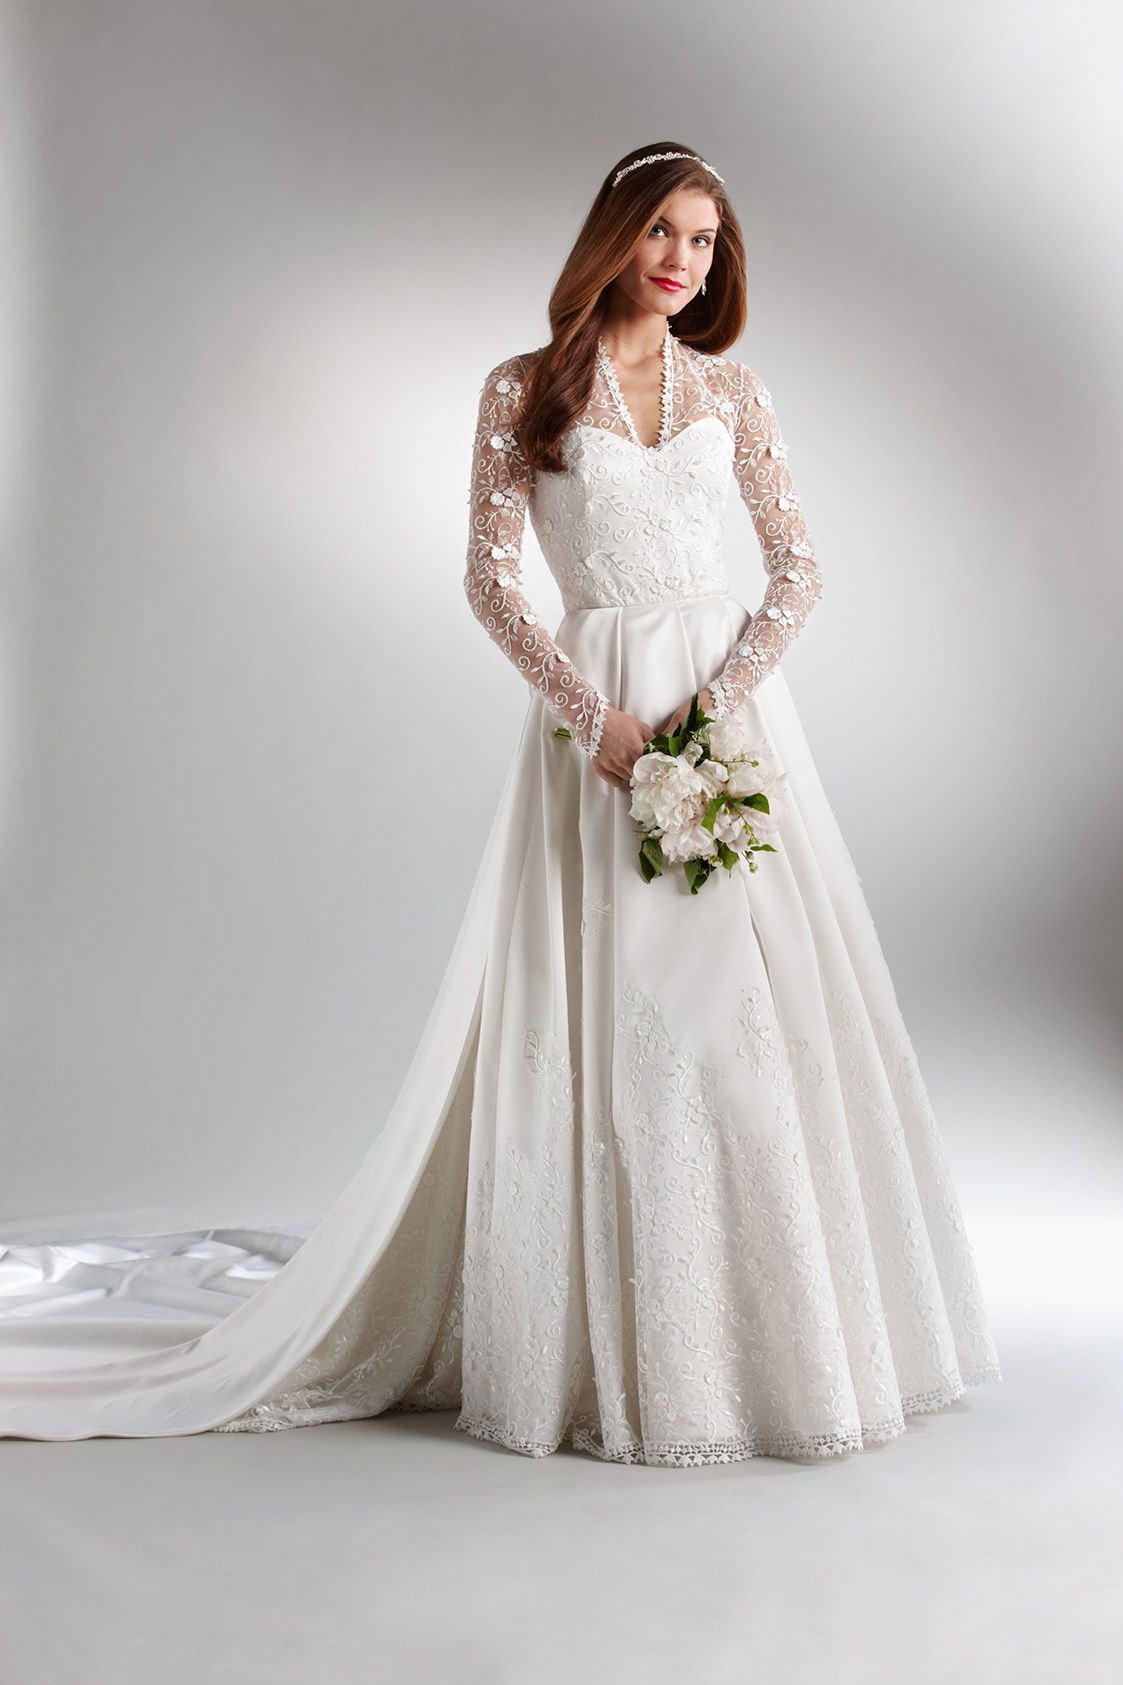 Kate Middleton Wedding Dress Knock Off I Think It Is An Impressive